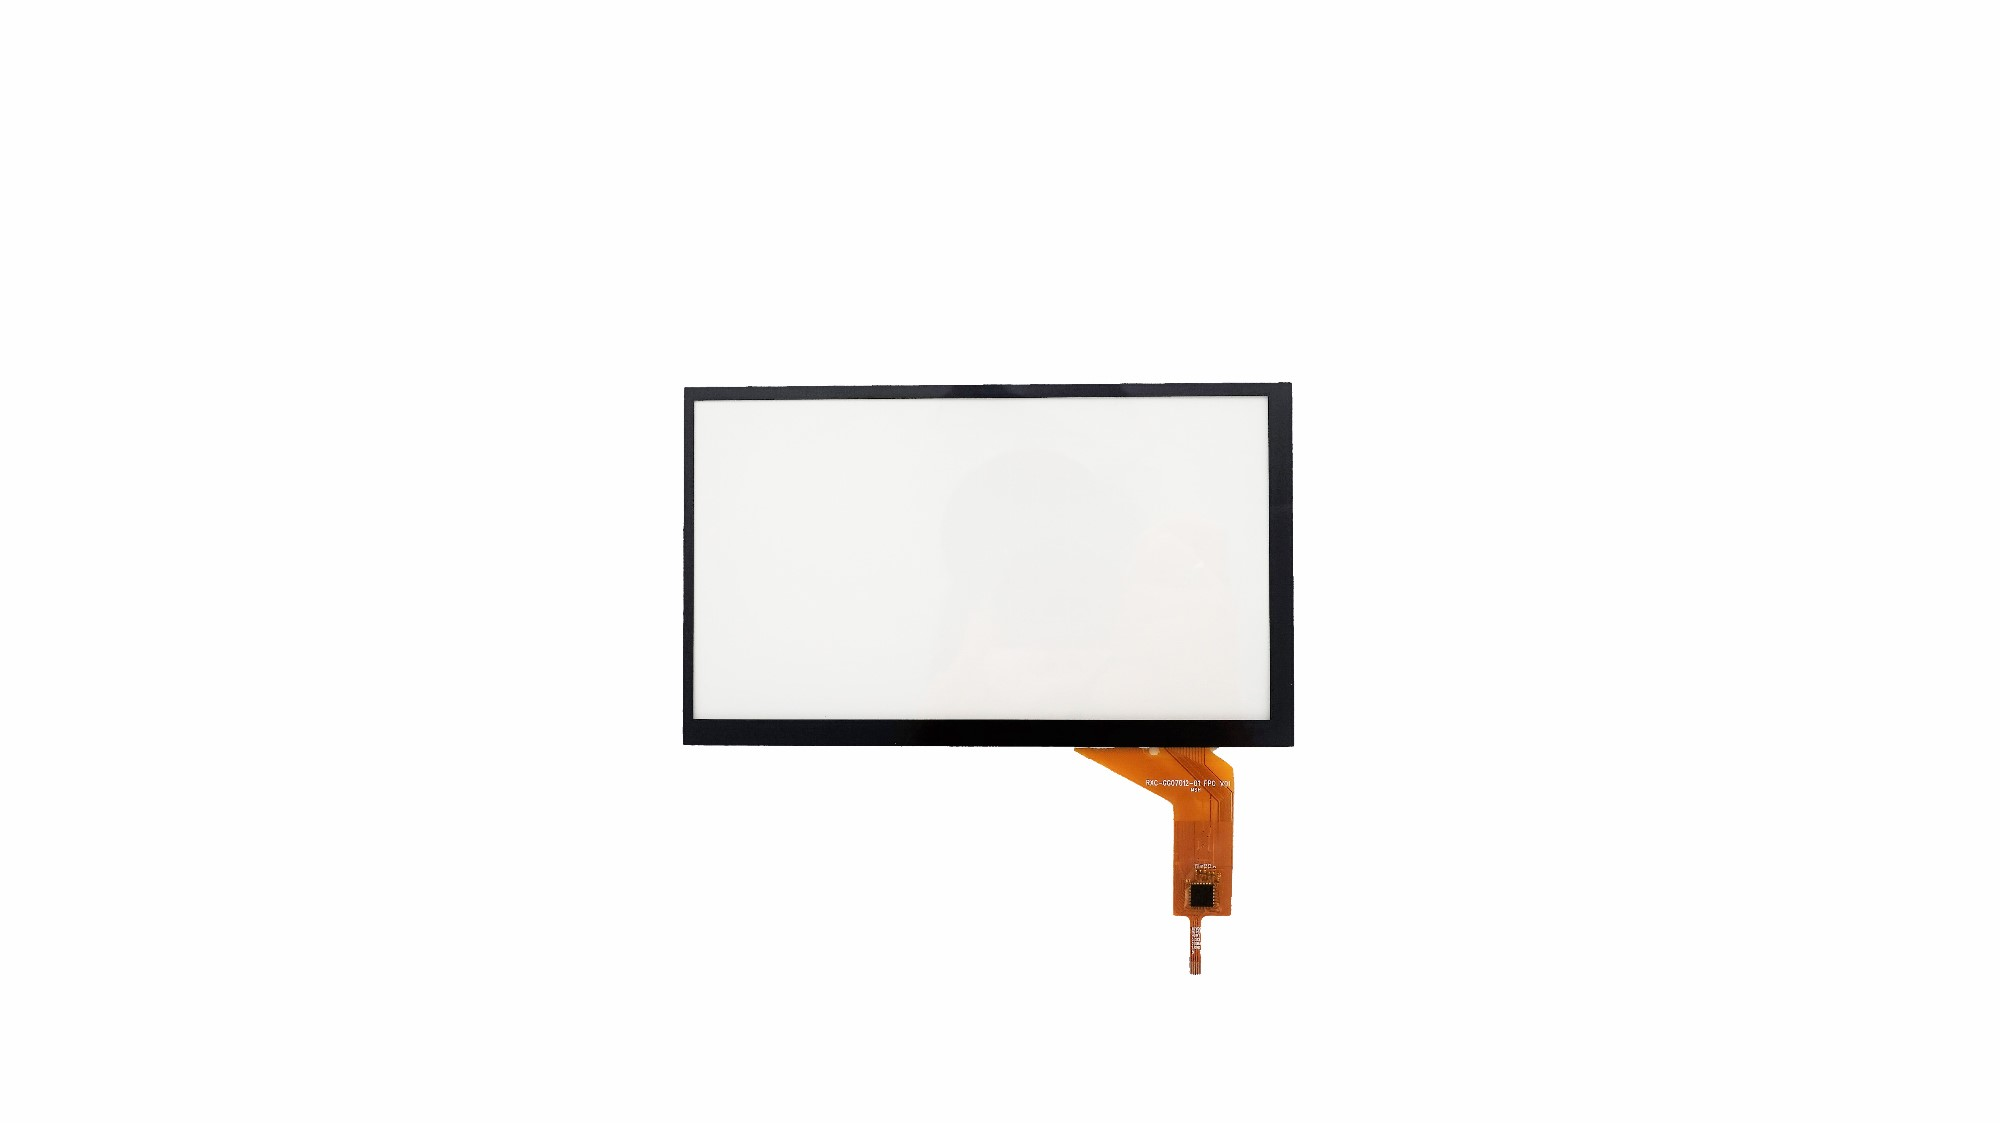 7.0 Inch Oem Pg Capacitive Touch Screen For Education Devices